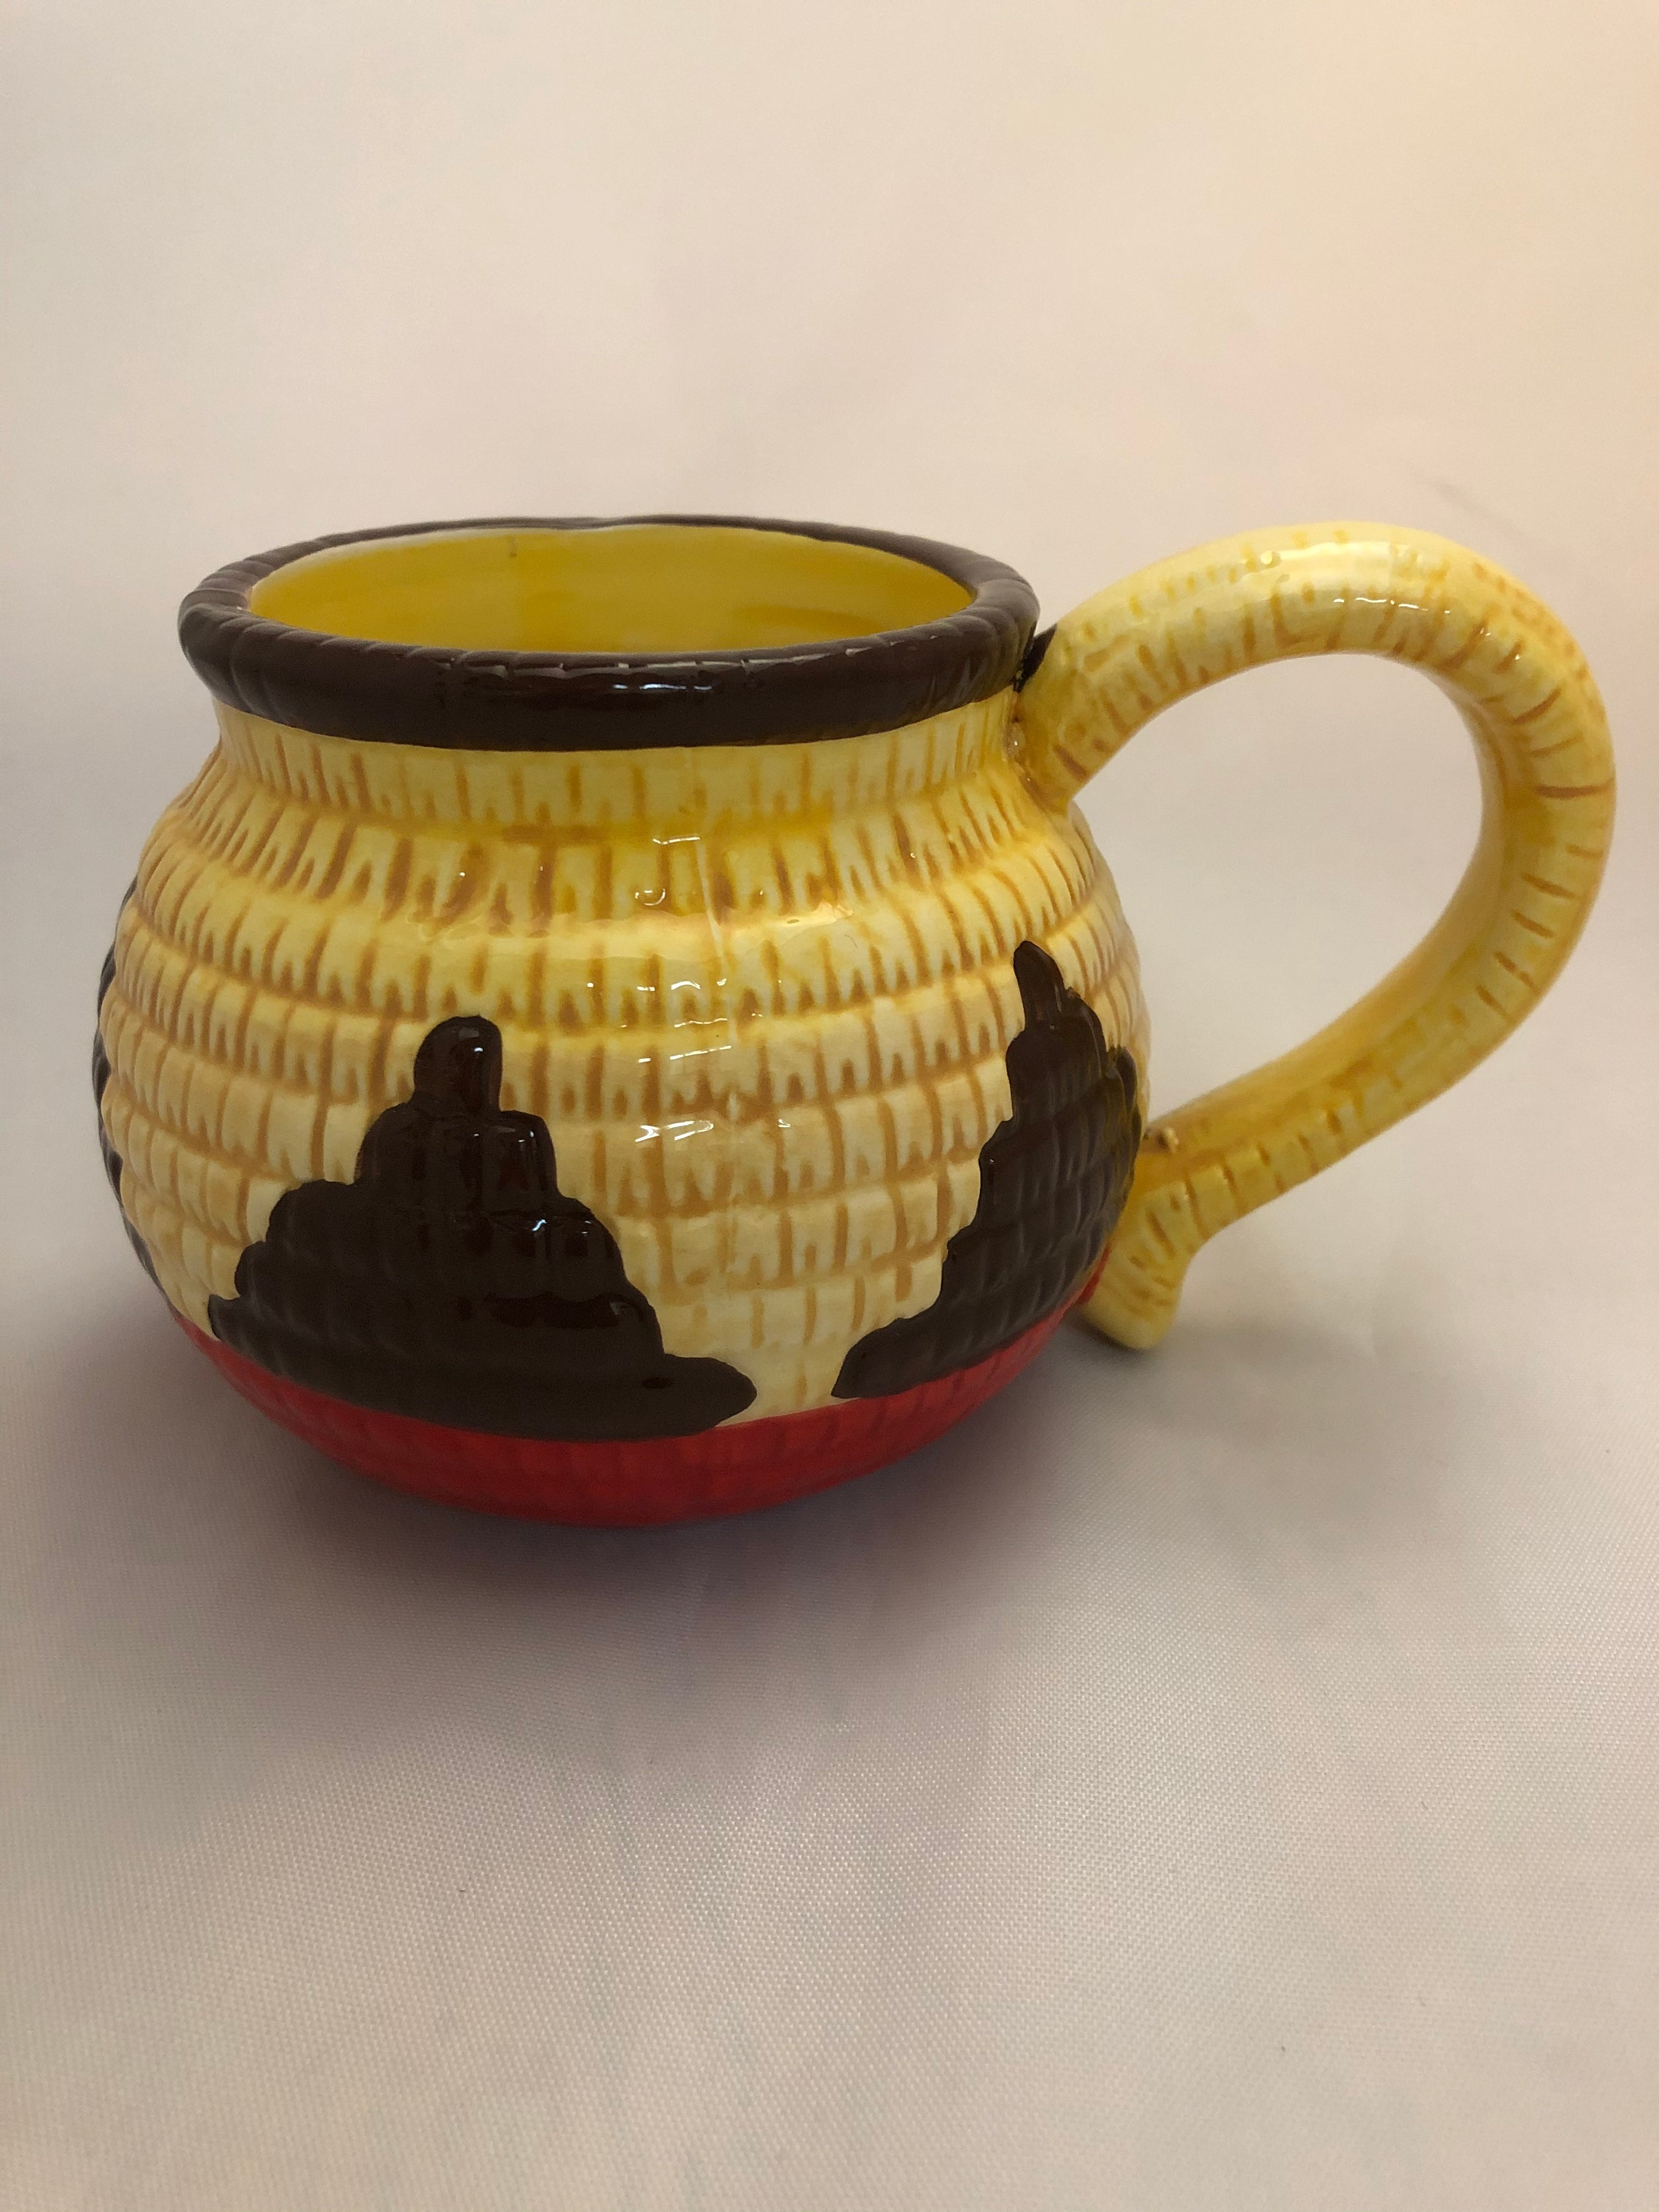 Southwest style mug.  Use code SAVE50 at checkout and save 50% off the lowest price.